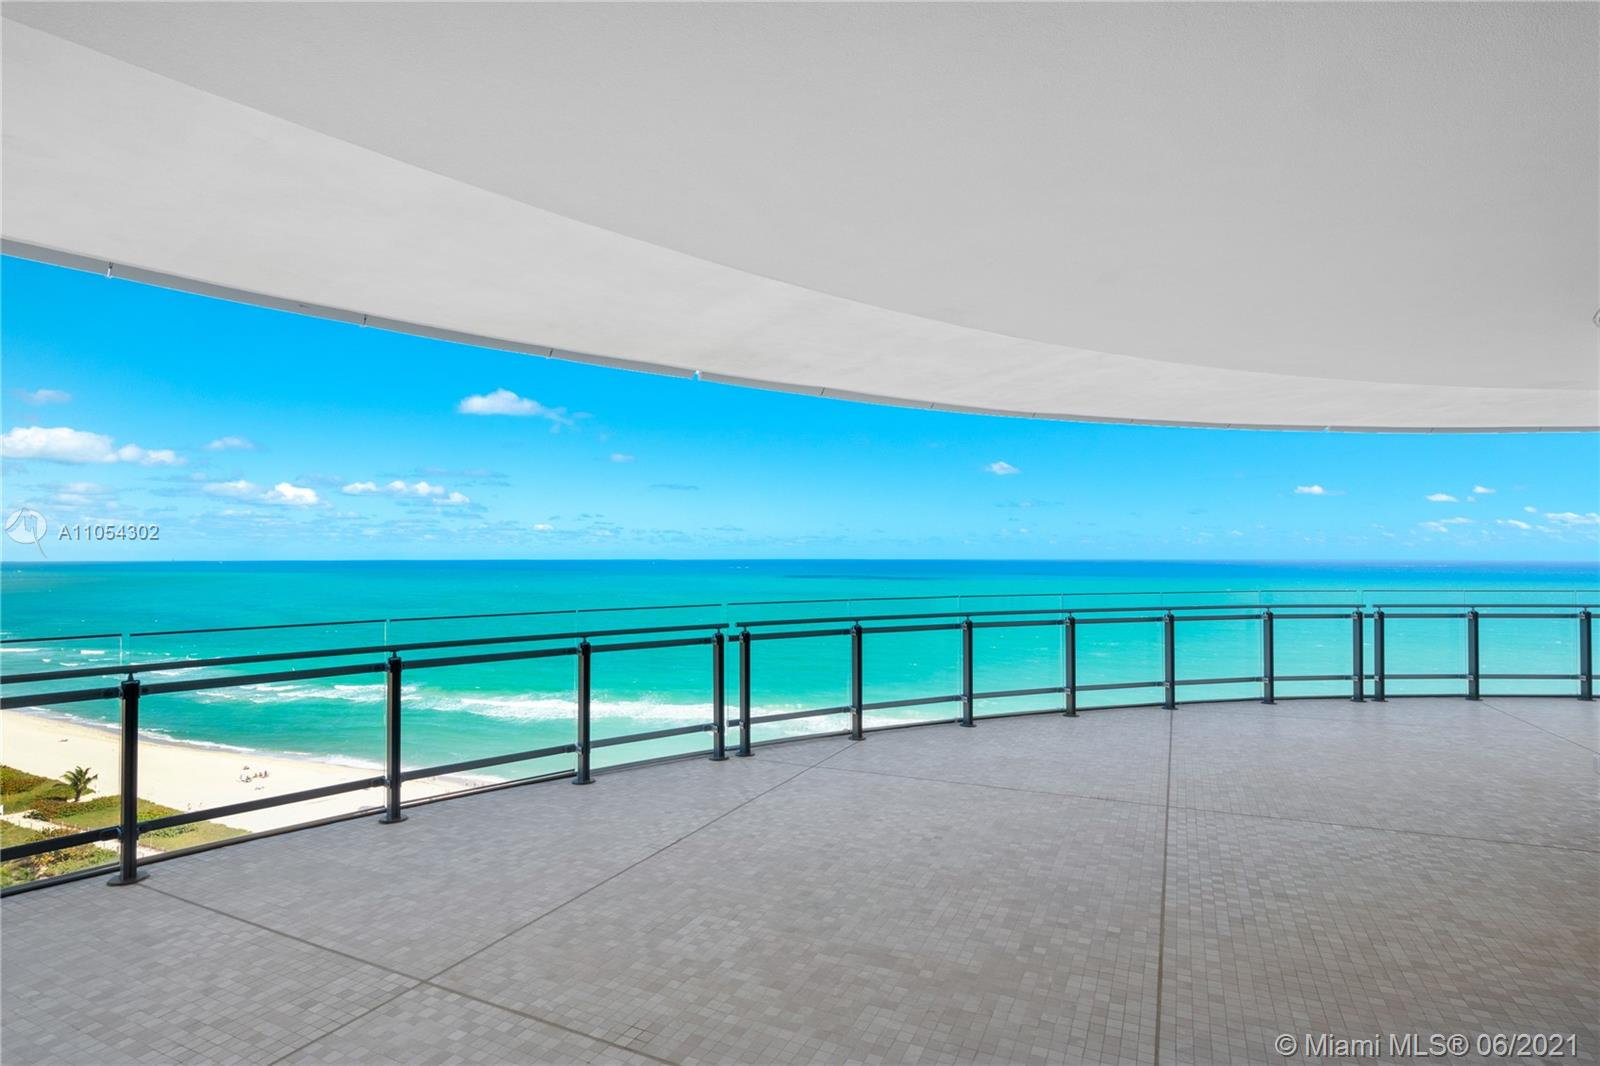 When land and ocean are joined to create a seamless collaboration, the result is a one of a kind masterpiece. Offering stunning ocean and city views, this magnificent 3 bed, 3/1 bath unit is the epitome of luxury lifestyle. Enjoy every amenity imaginable including full service spa, ocean view gym, wine bar, 2 pools and even a lifestyle director. The heart of Eighty Seven Park is an atmosphere of luxury, service & attention to detail. It is these personalized touches, superior service & gracious hospitality that places life at 87 Park on a level all its own.